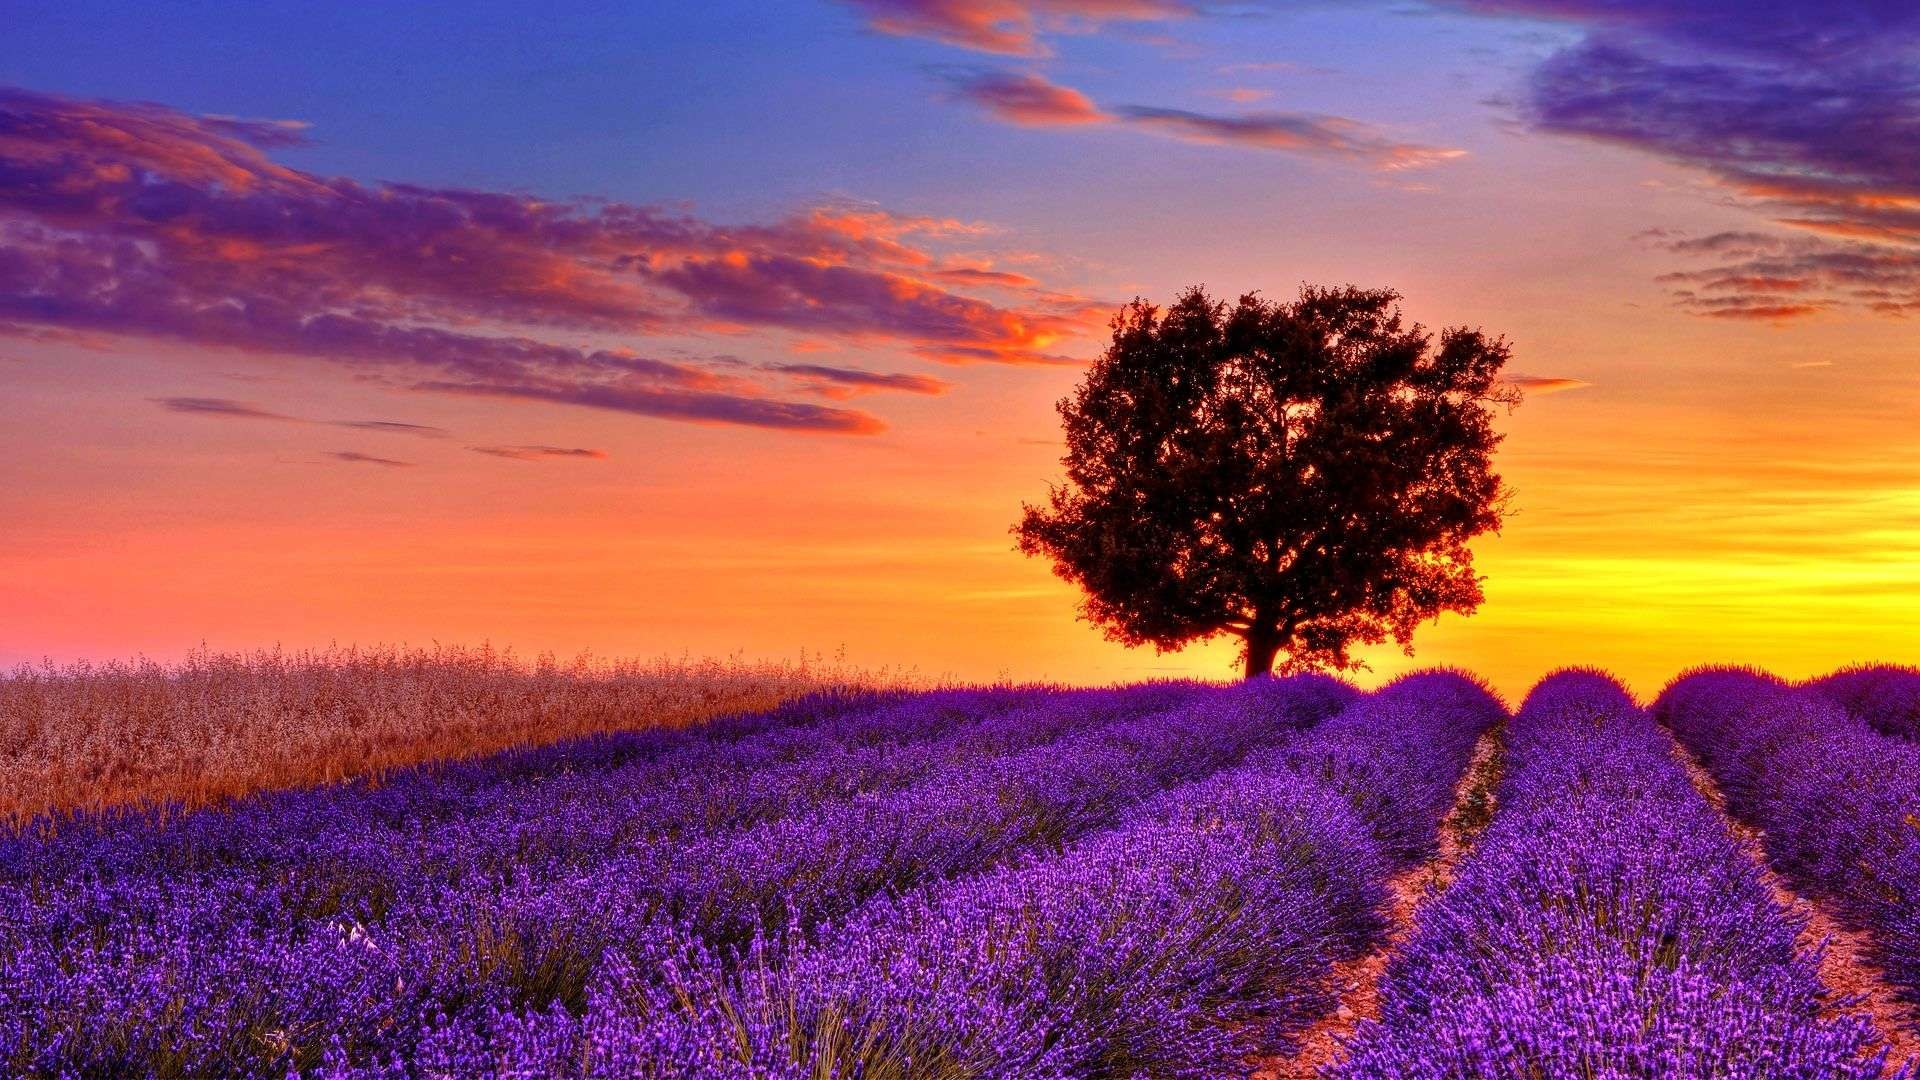 lavender-flower-field-sunset-high-resolution-wallpaper-for ...